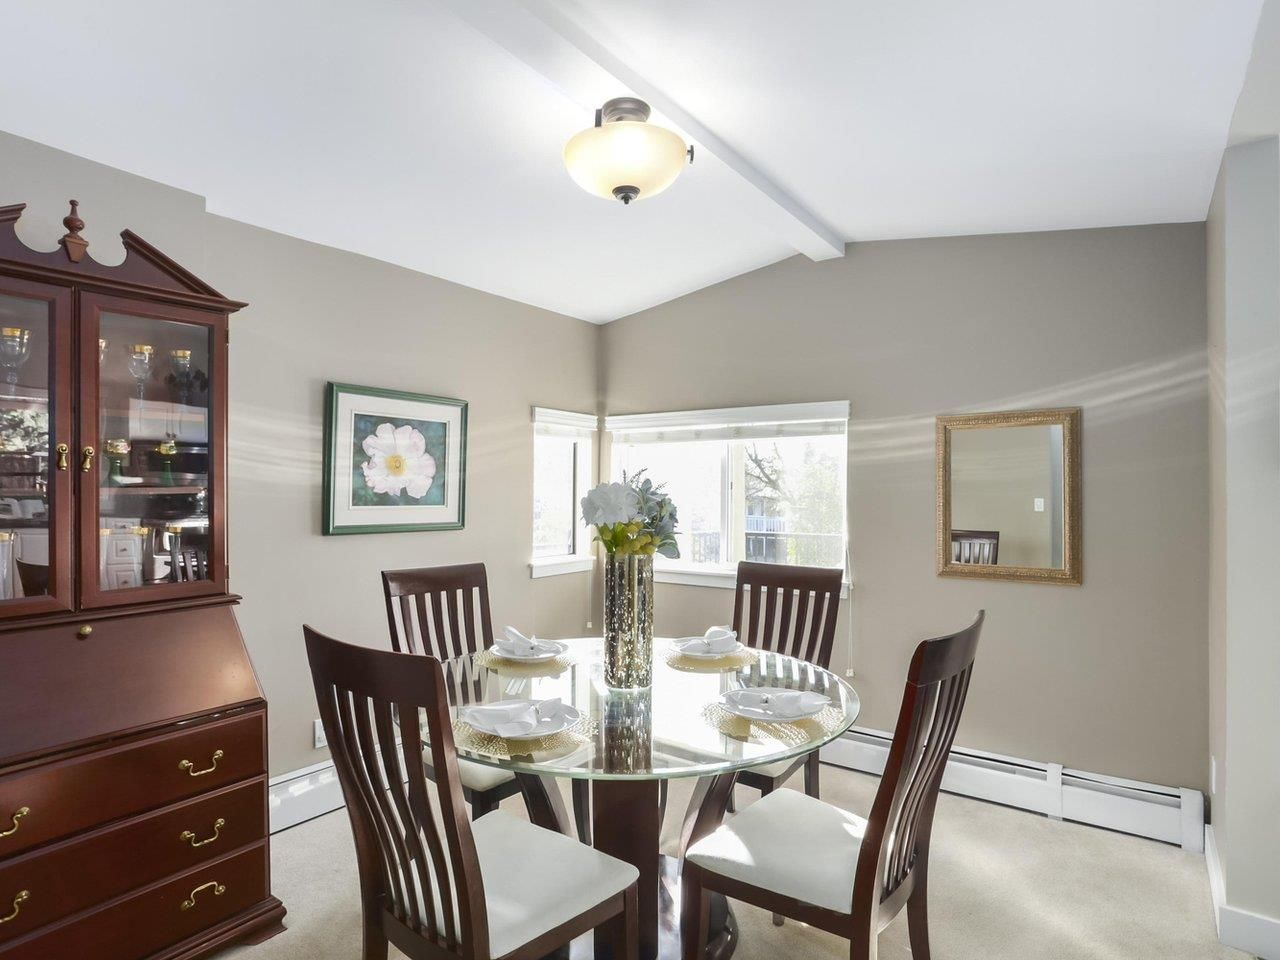 Photo 6: Photos: 325 W KINGS Road in North Vancouver: Upper Lonsdale House for sale : MLS®# R2443642